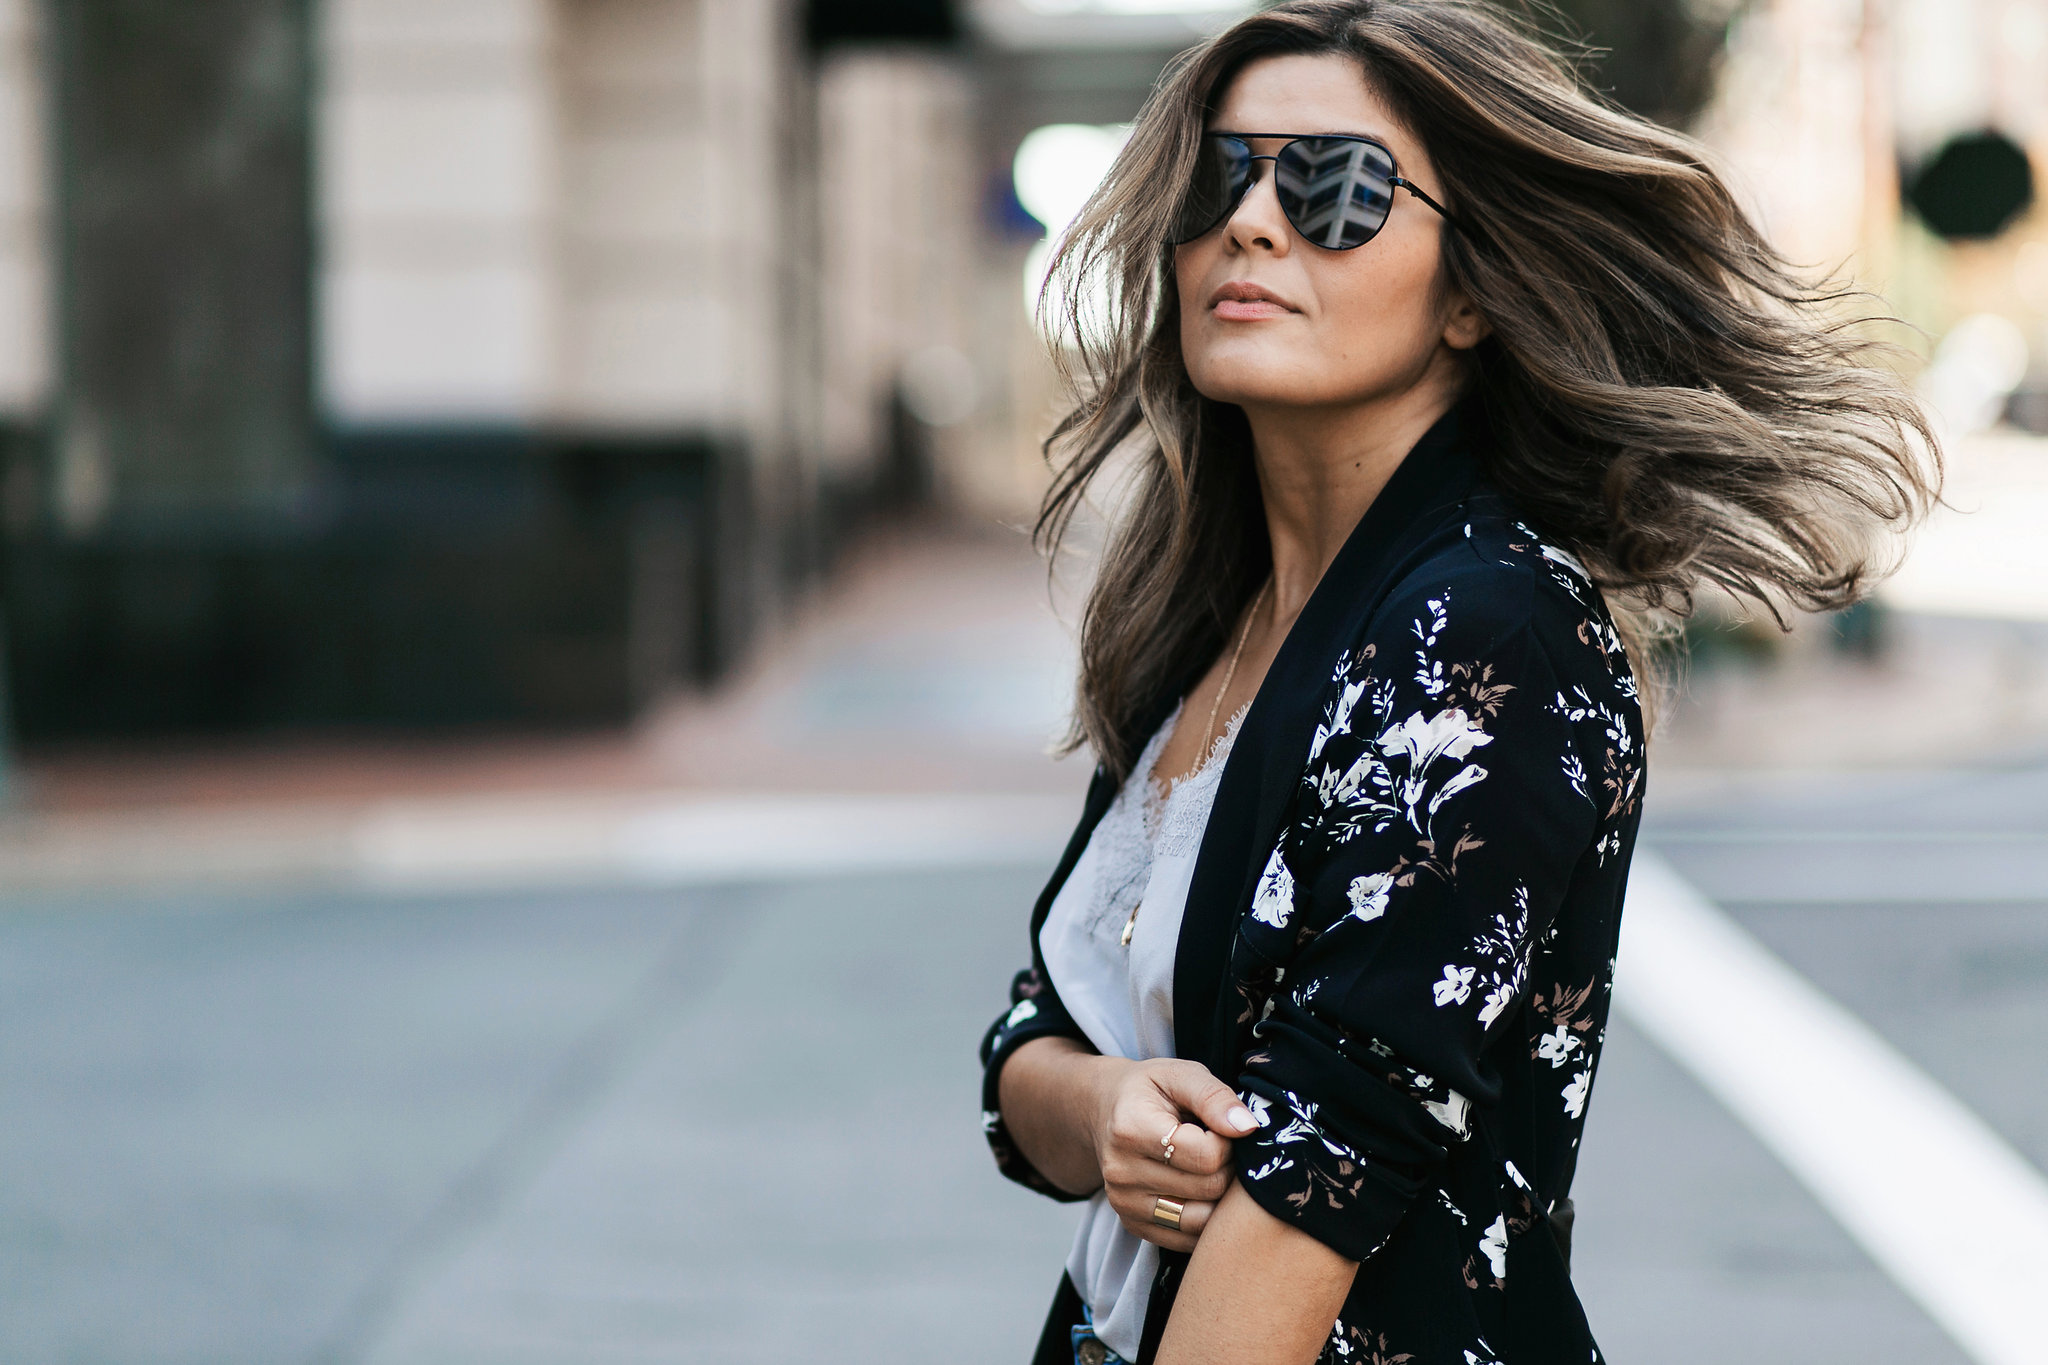 Style MBA Wears L'Academie x Revolve Floral Robe and Cami NYC